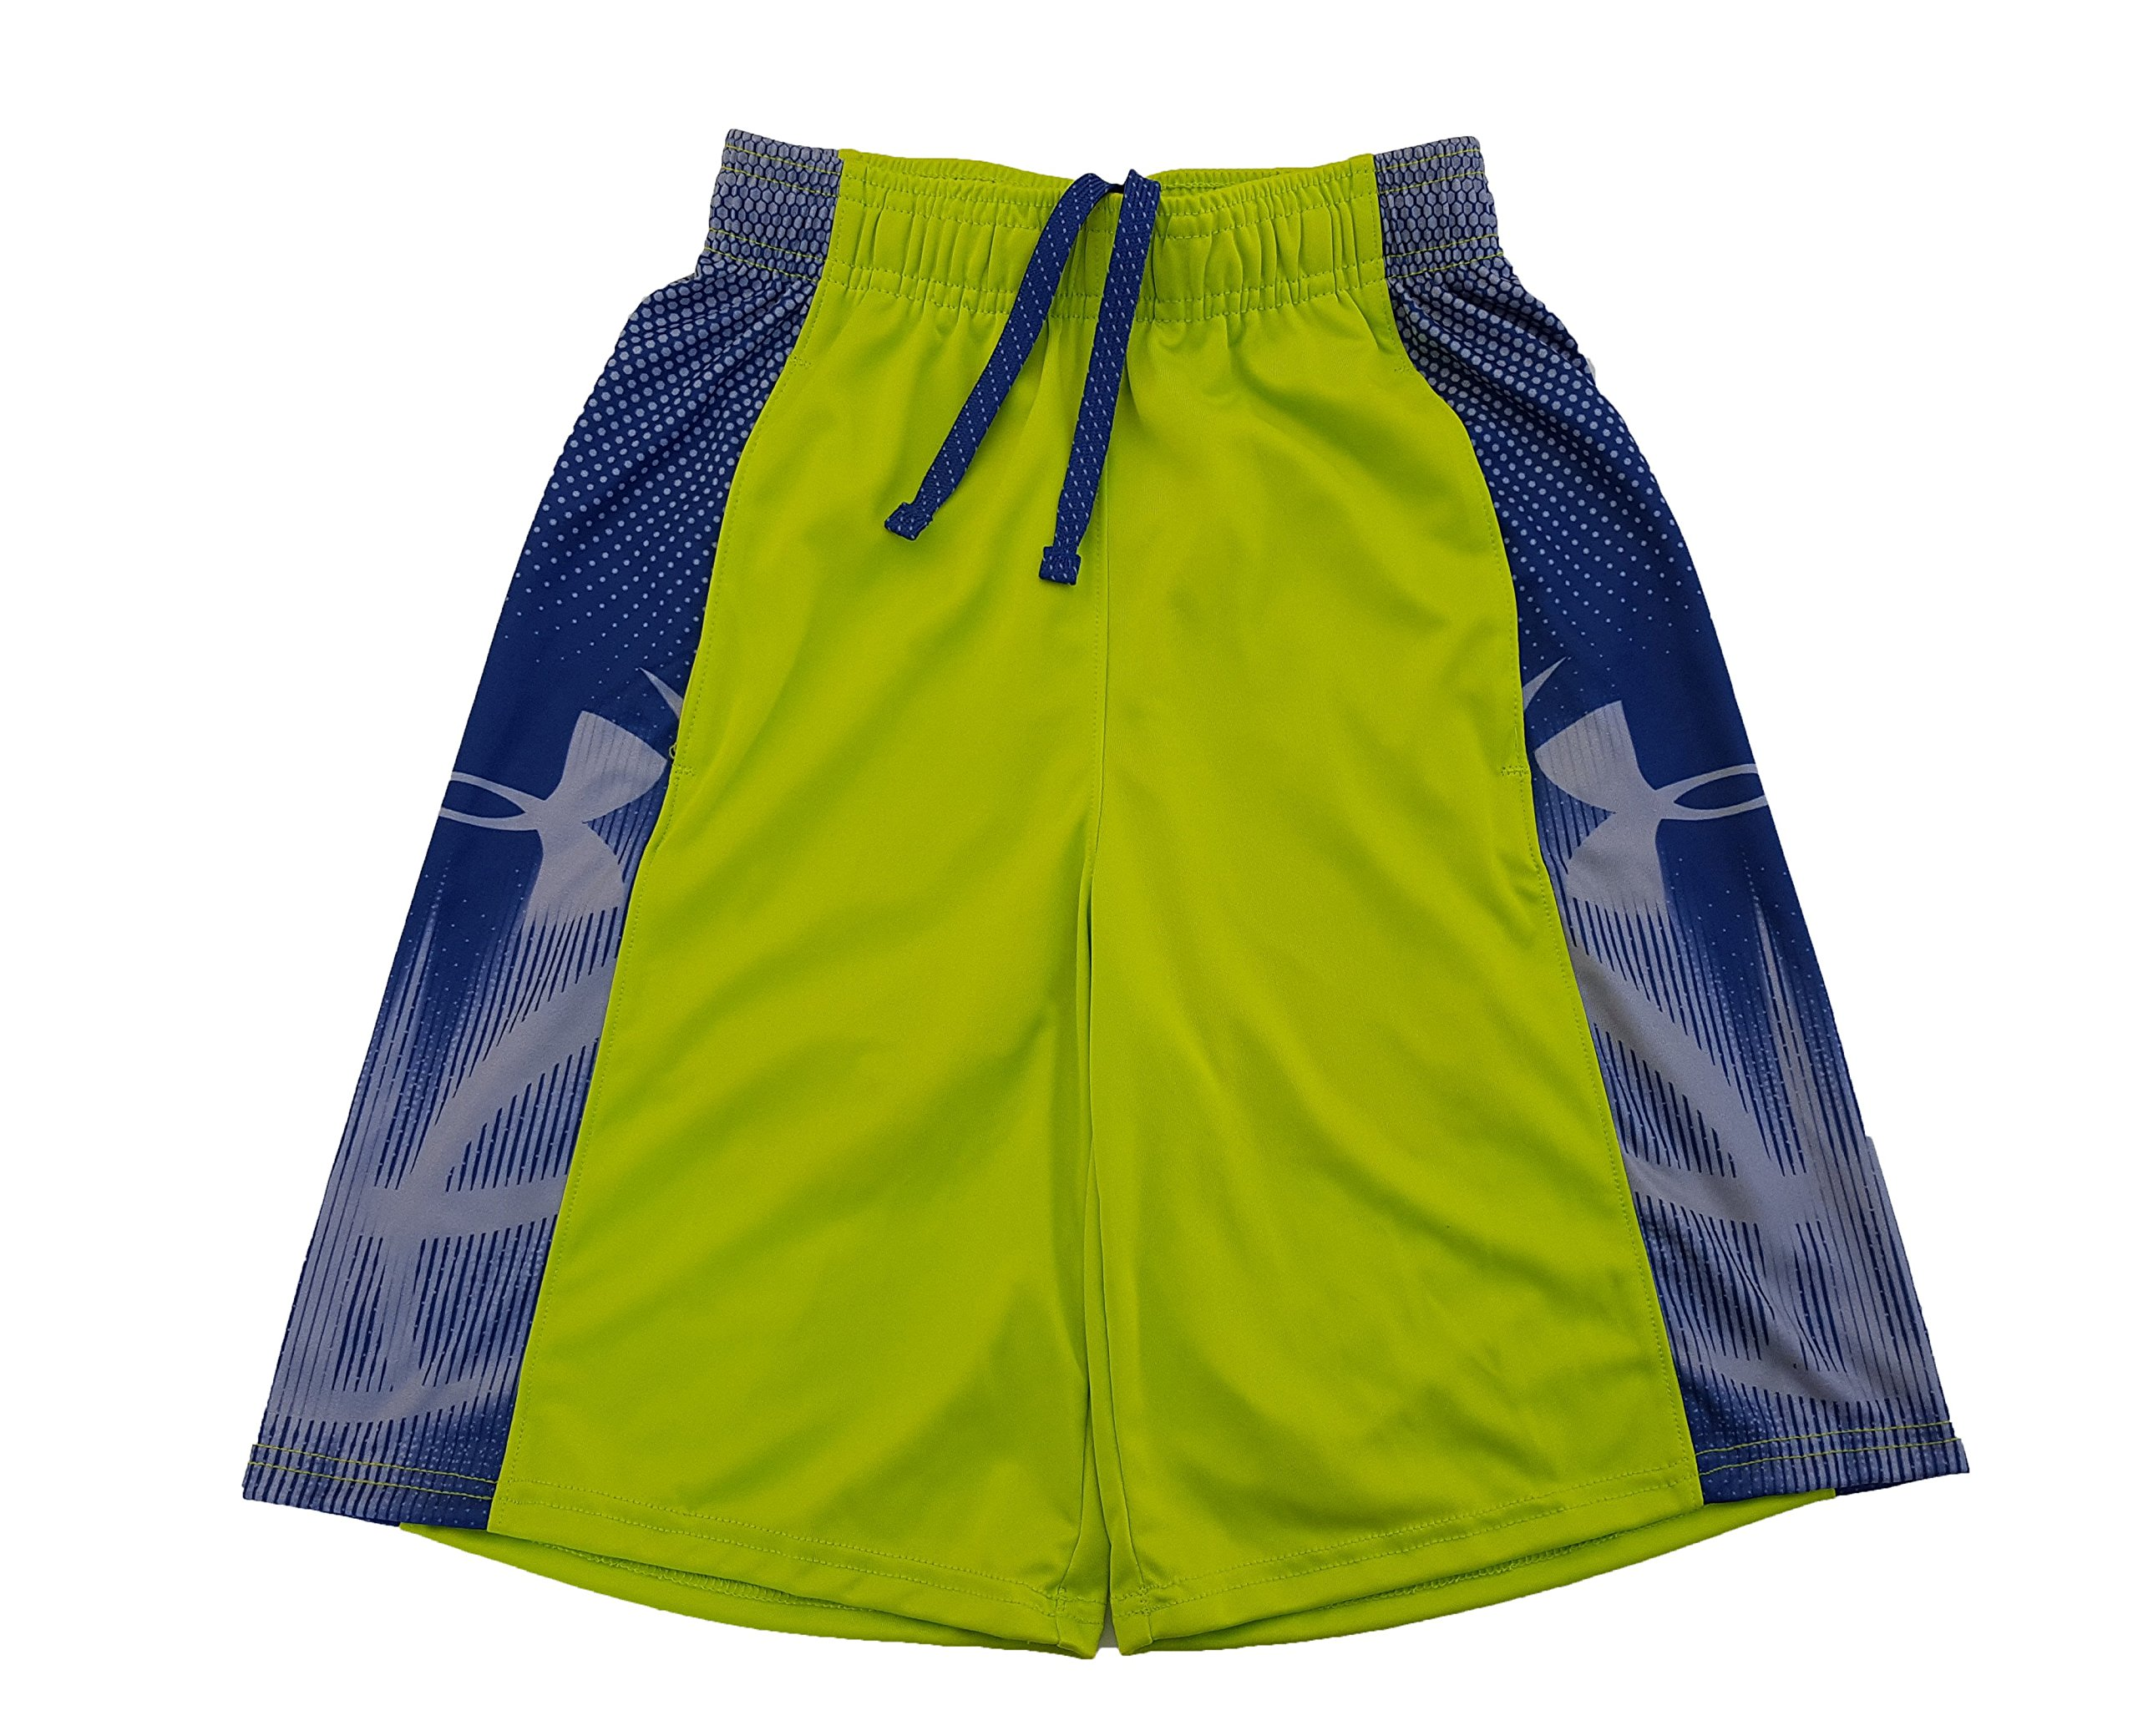 Under Armour Big Boys' UA Jump Over 'Em Basketball Shorts (X-Small, Green/Grey)